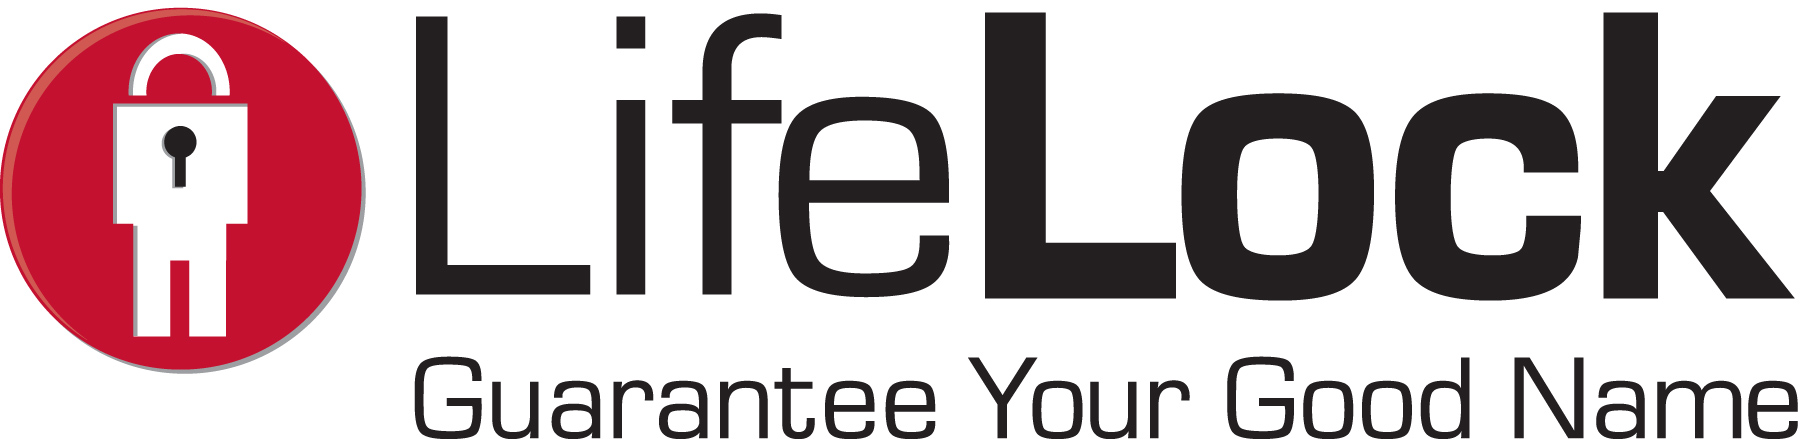 lifelock_logo_tag